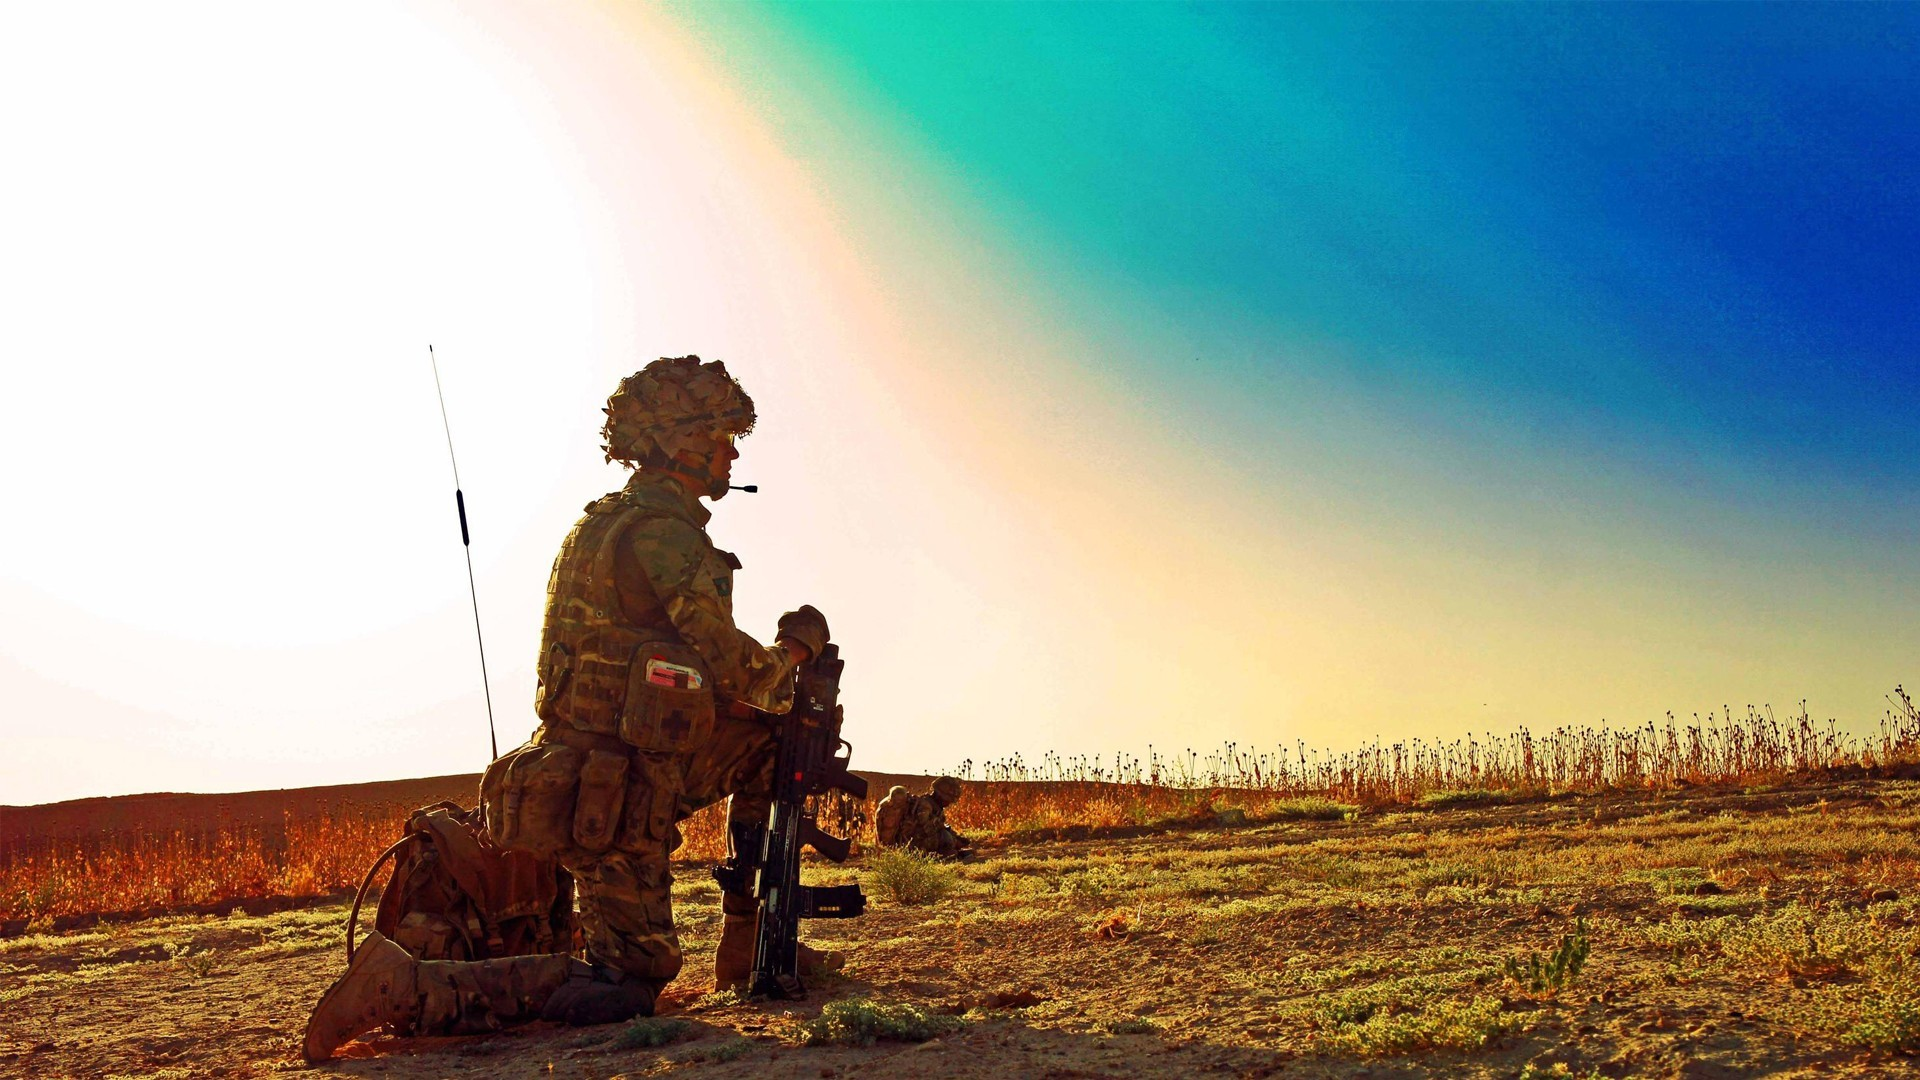 Army wallpapers best wallpapers - Military wallpaper army ...